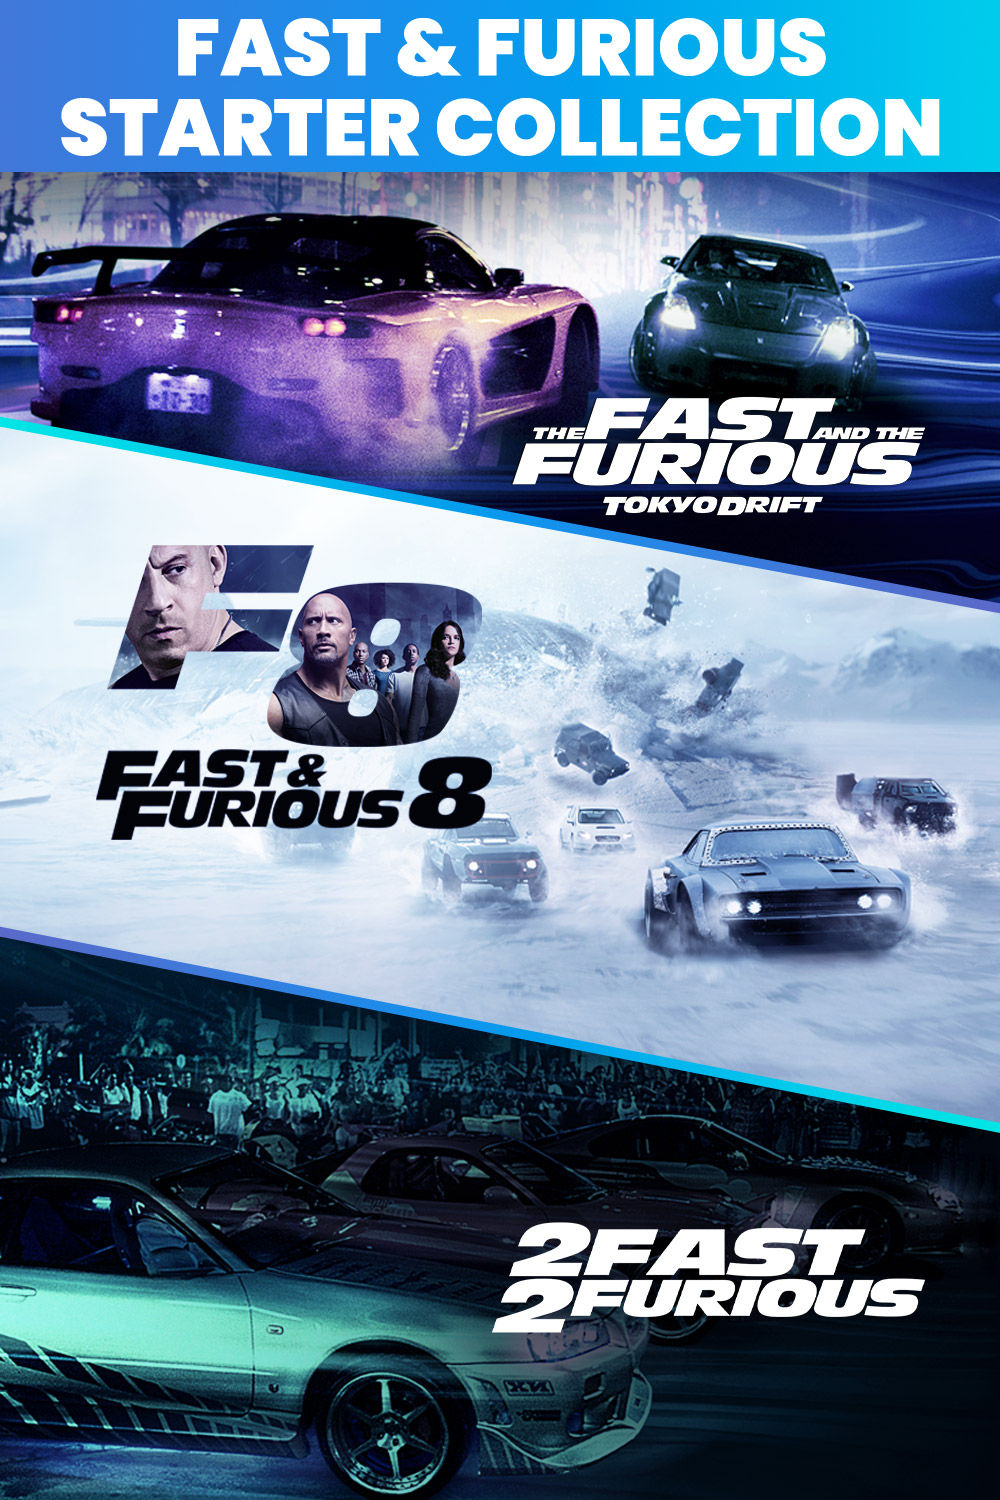 Fast & Furious Starter Collection